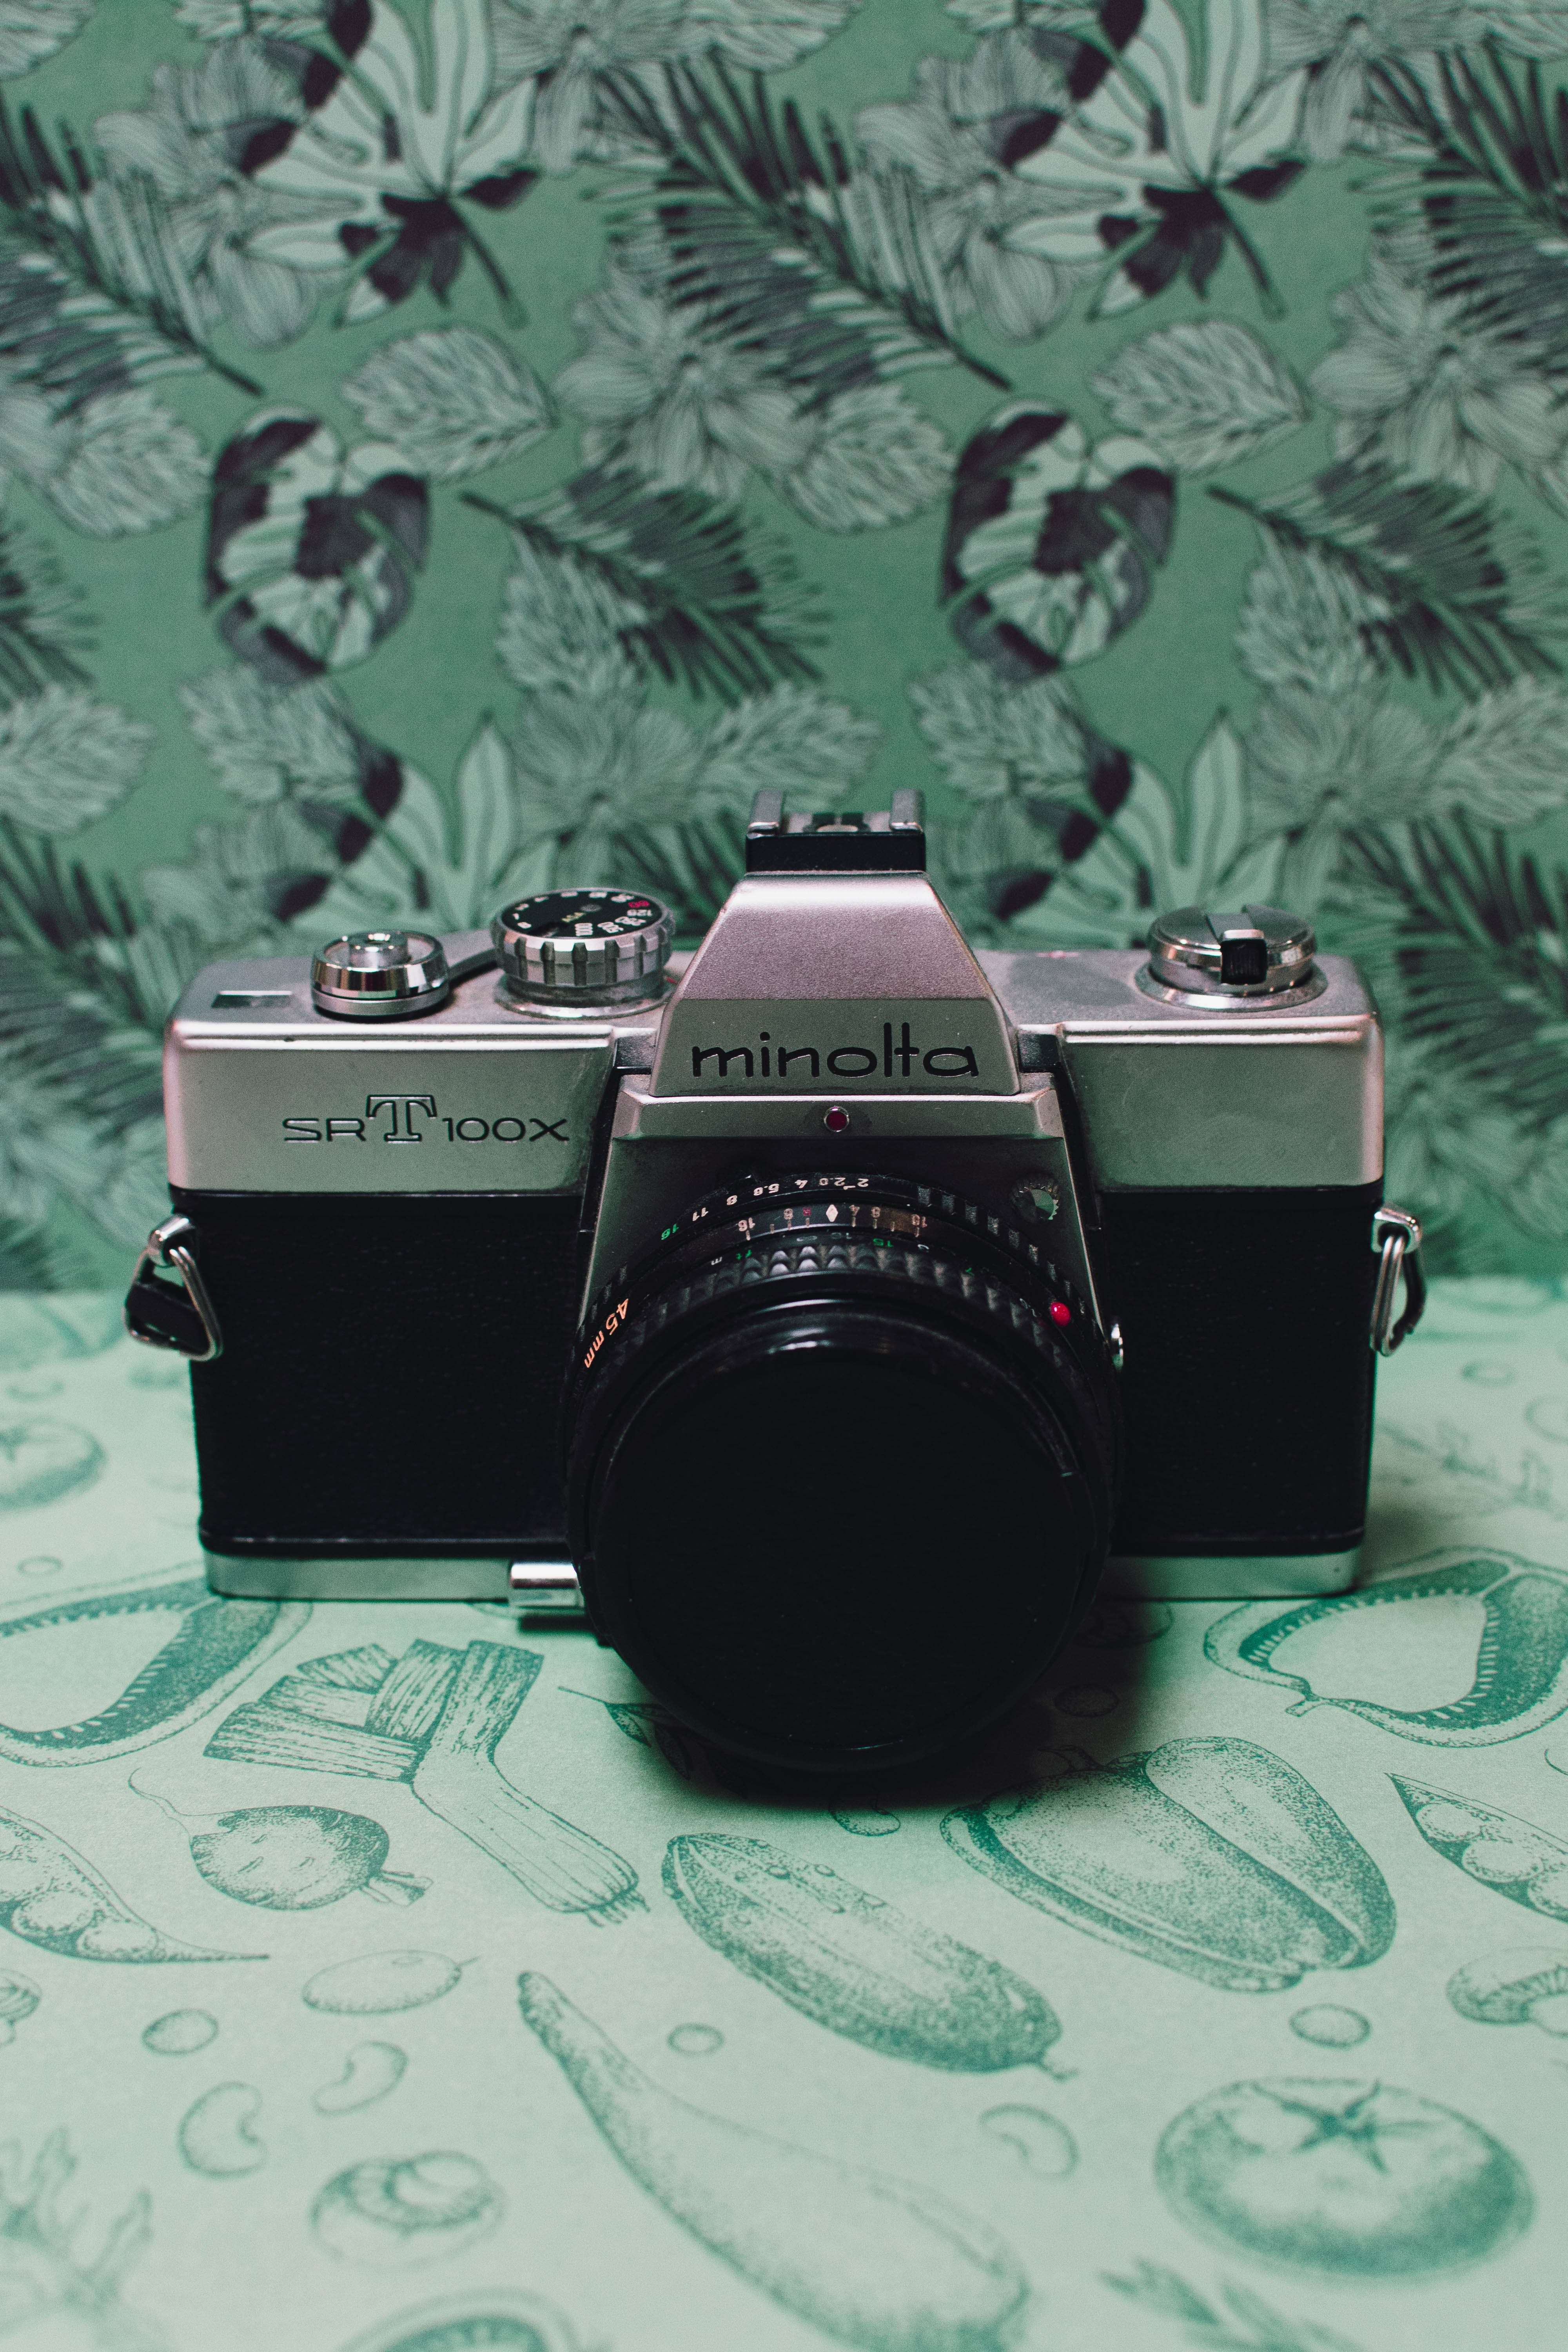 Black and Gray Film Camera on Green Floral Textile